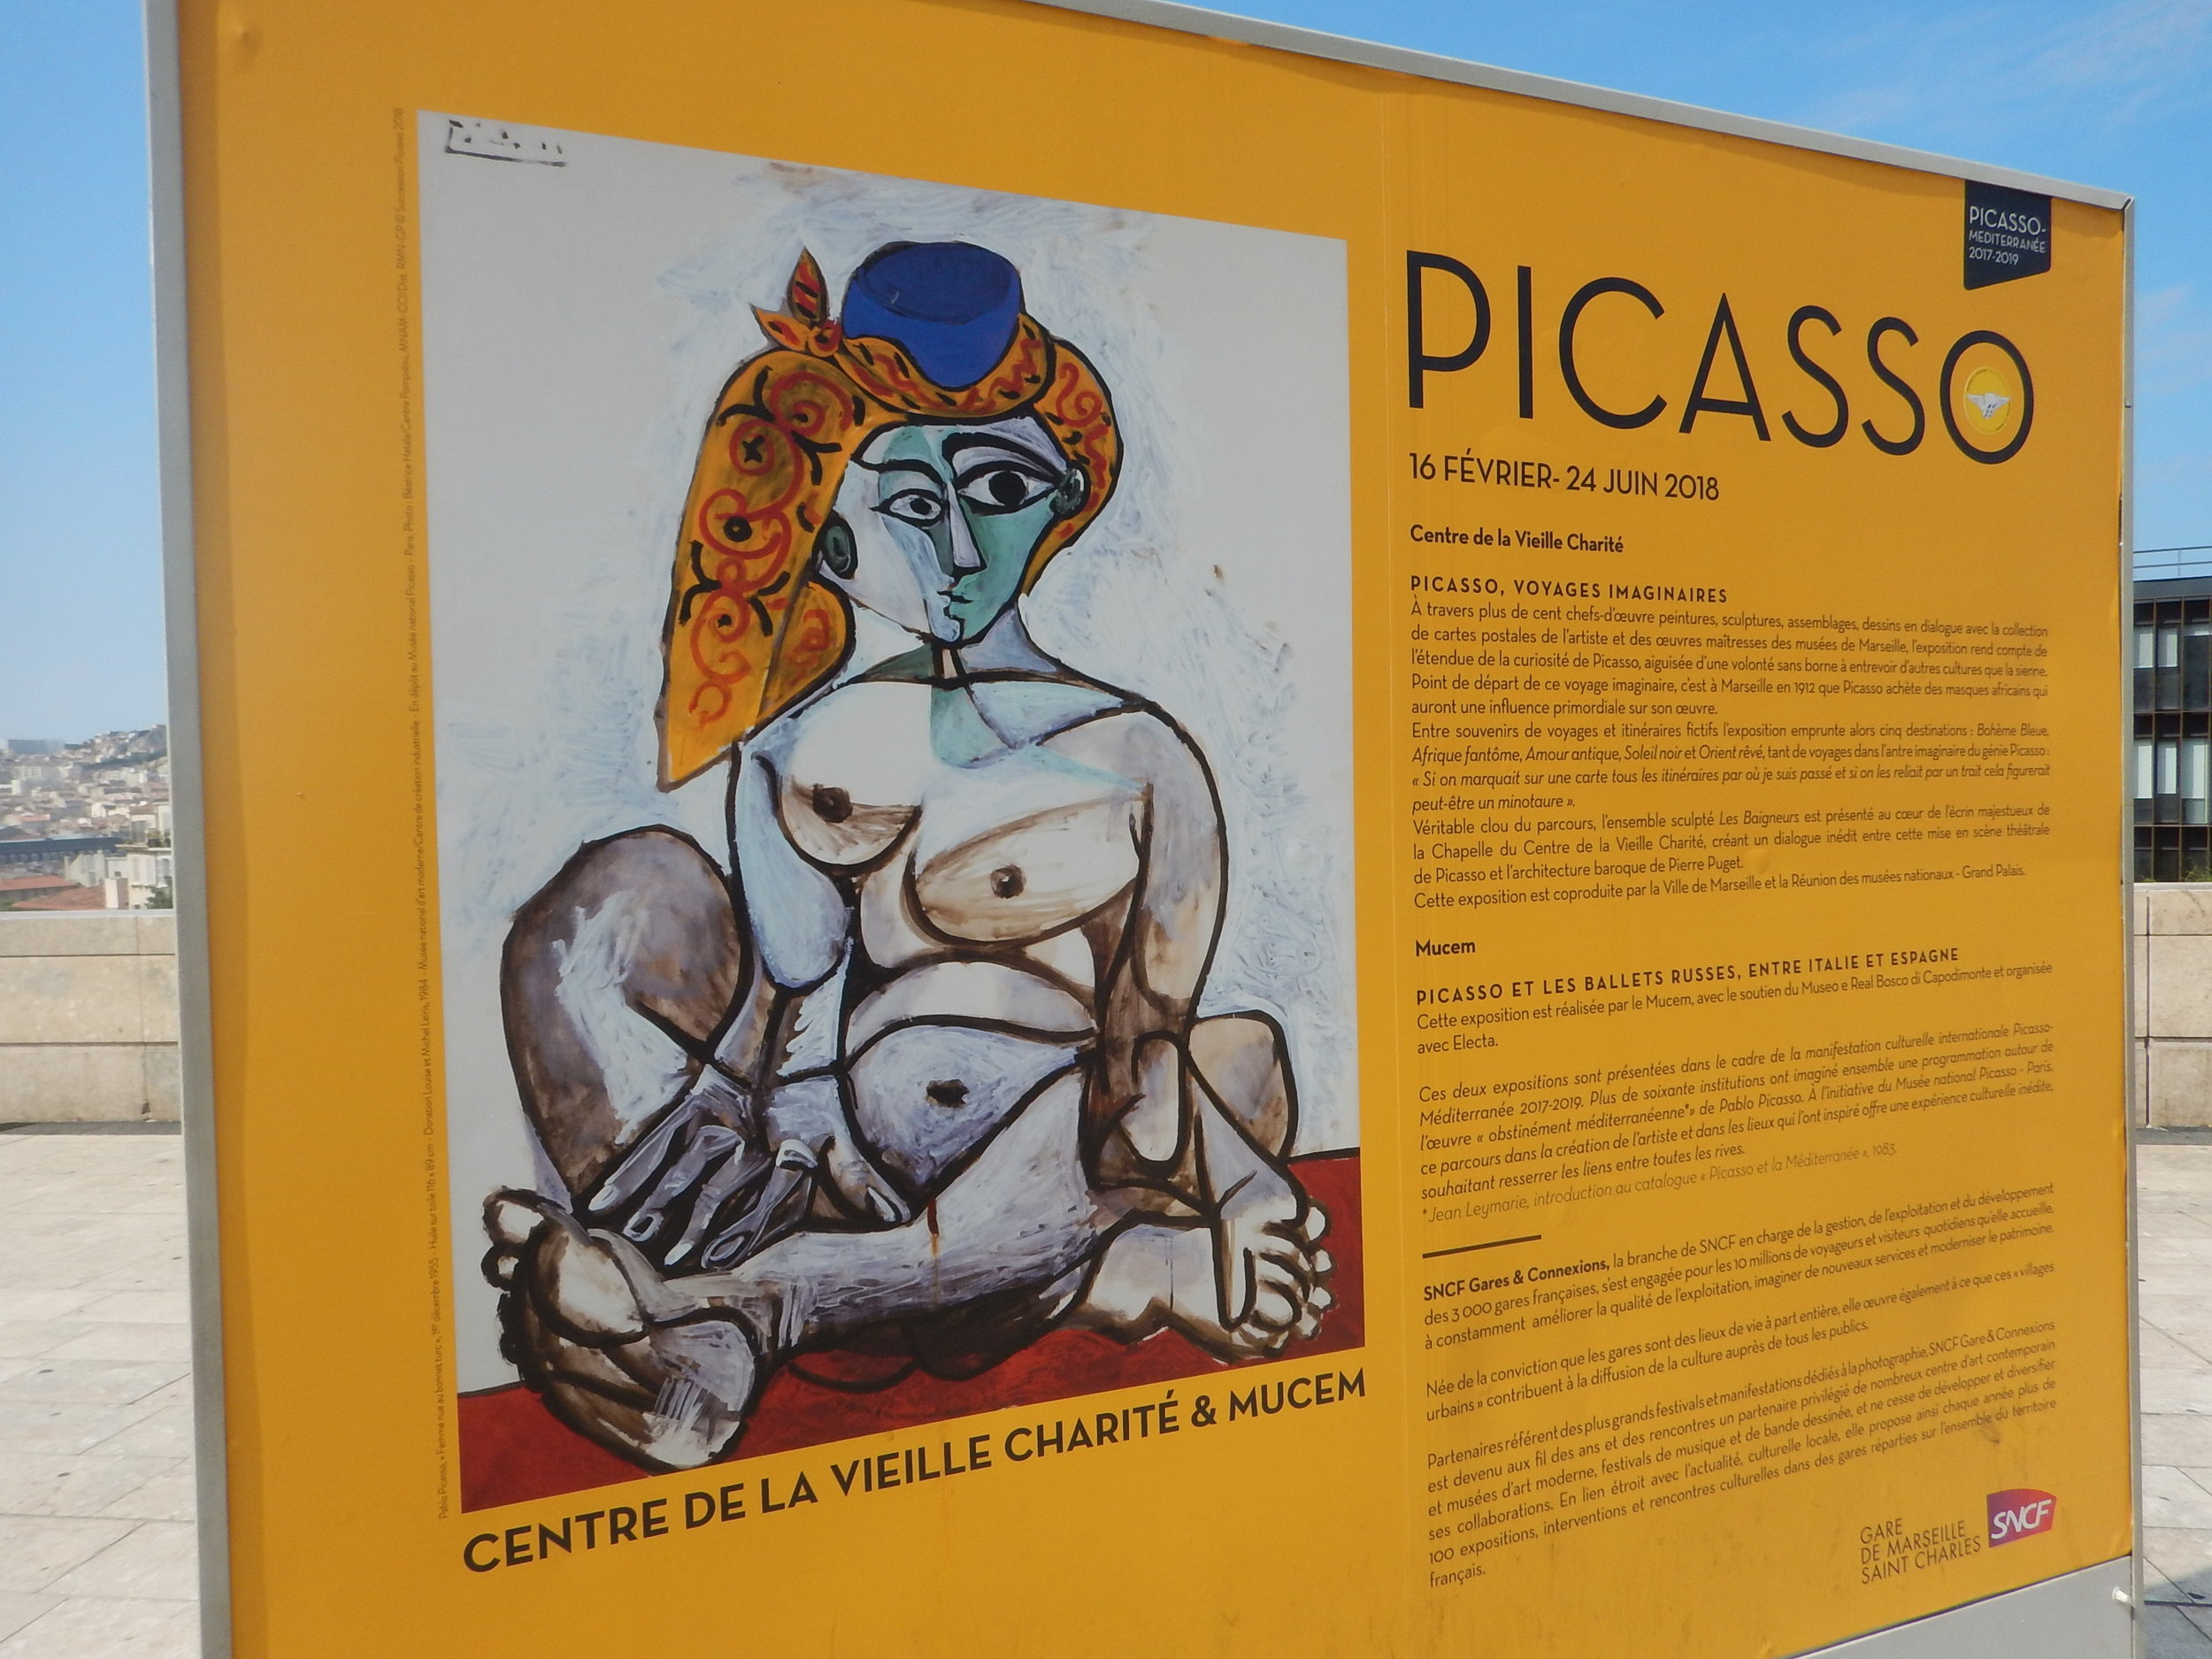 Picasso exhibition in town.